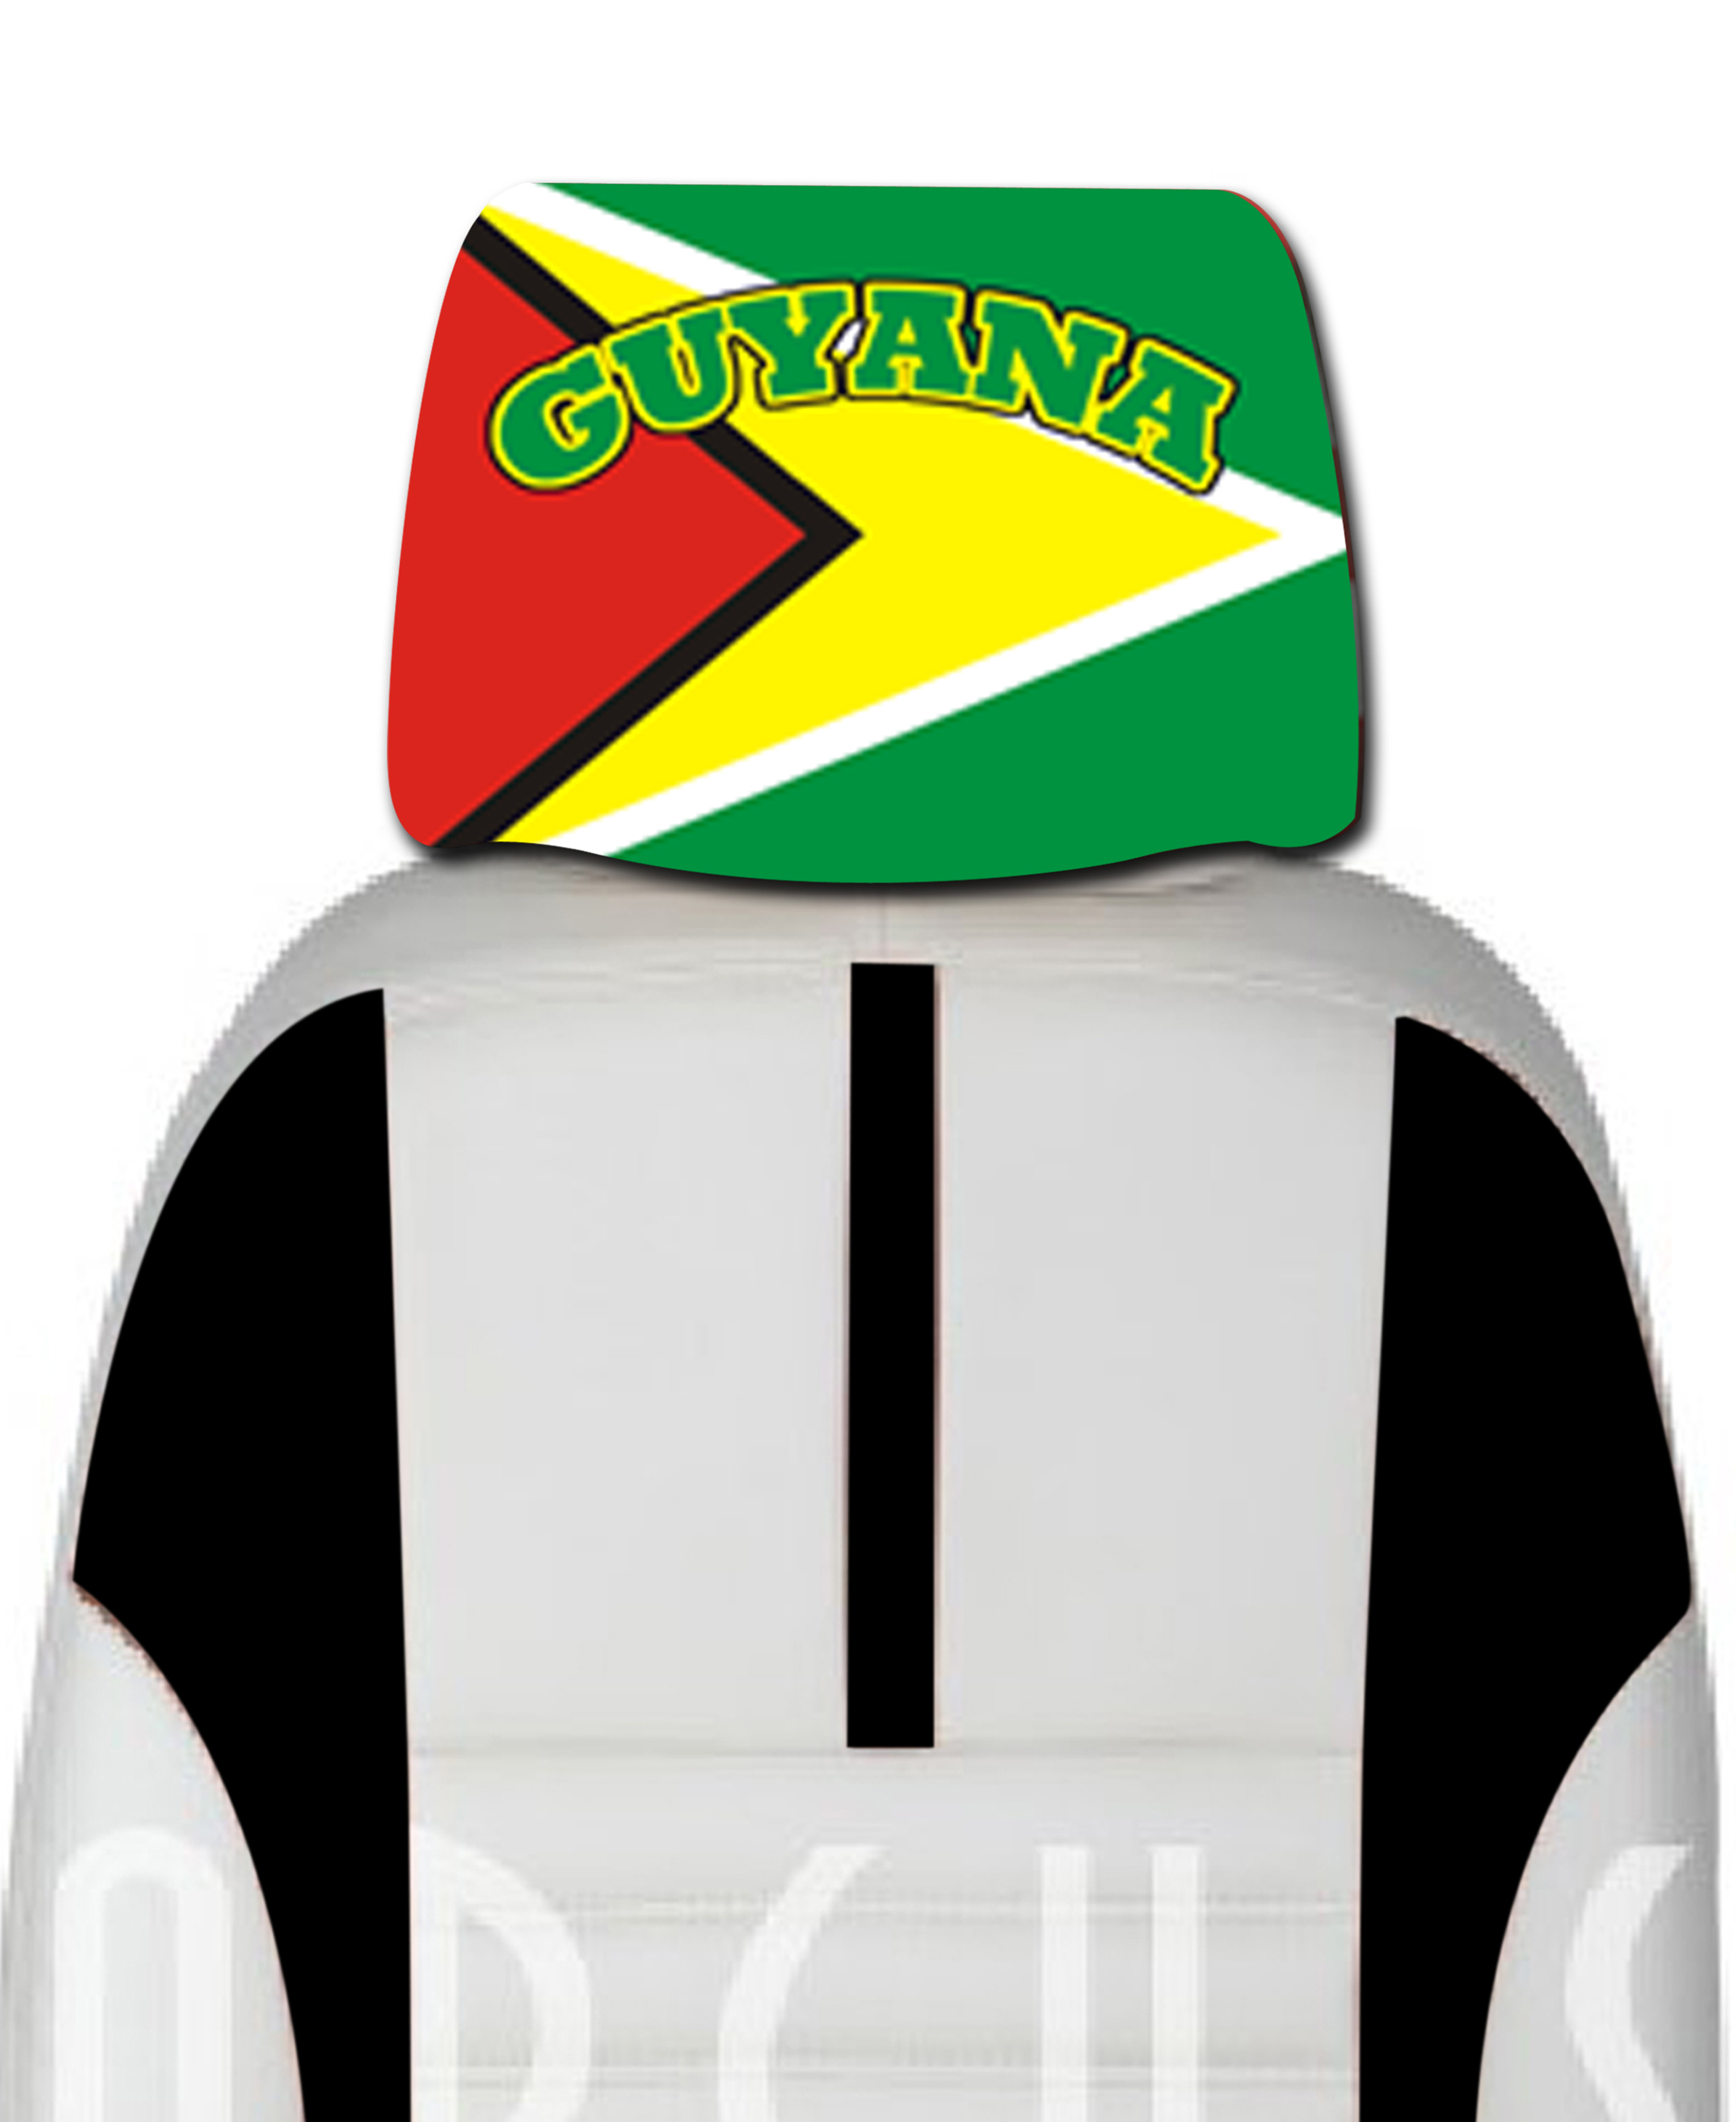 images/Guyana headrest Car cover seat flag